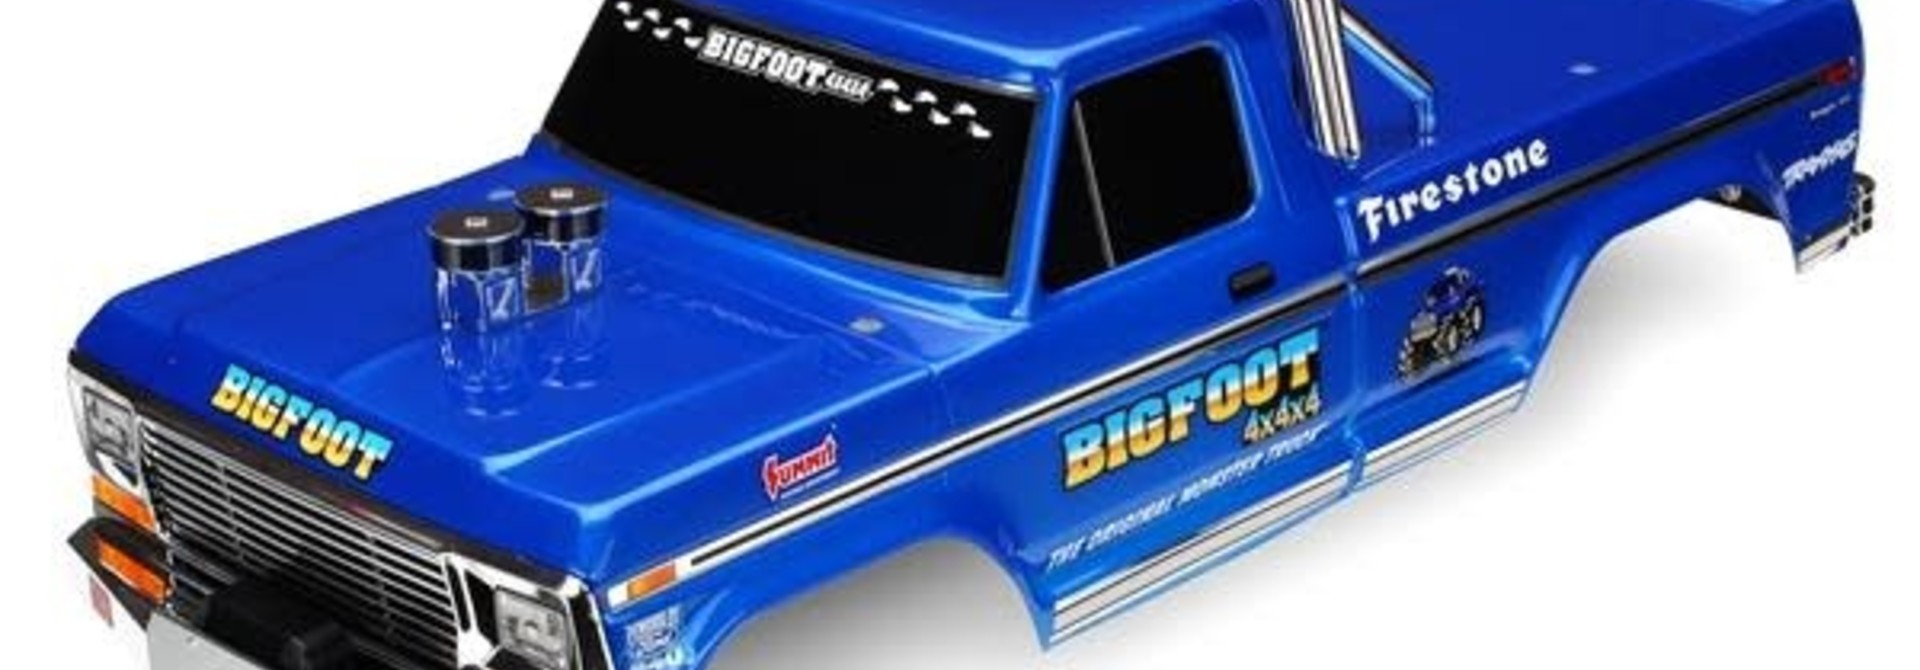 Body, Bigfoot® No. 1, Officially Licensereplica (painted, decals applied), TRX3661